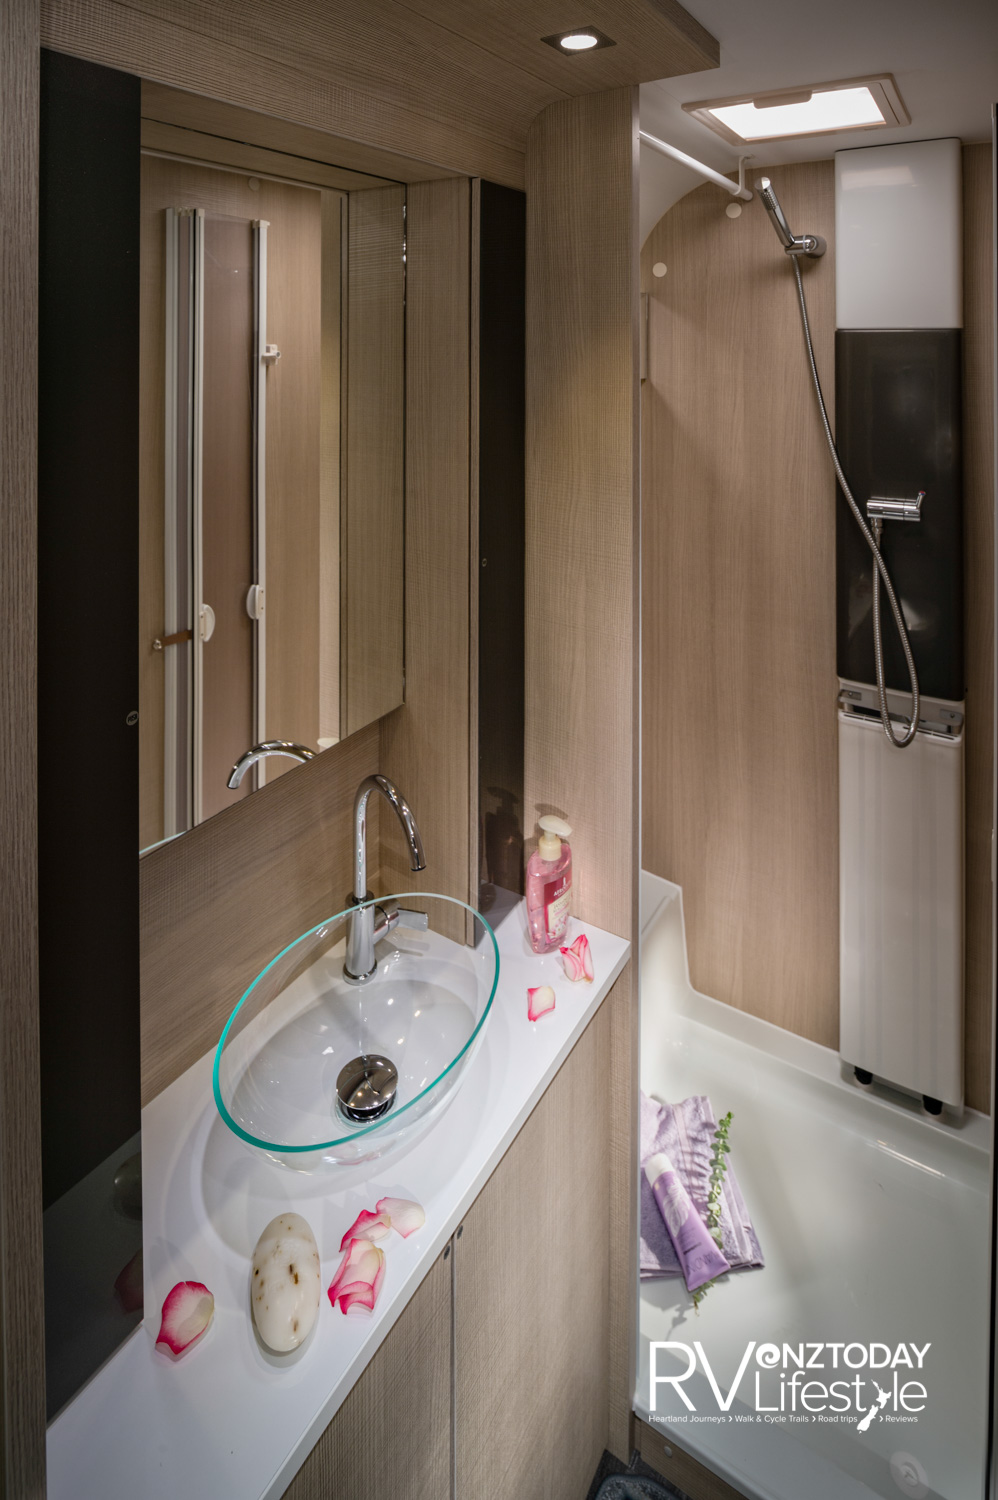 The rear full-width bathrooms offer full shower with roof vent, radiator heating to the left, vanity unit with mirrored storage, glass vanity sink, quality fixtures and fittings, storage cupboards below vanity. Cassette toilet out of picture on the left